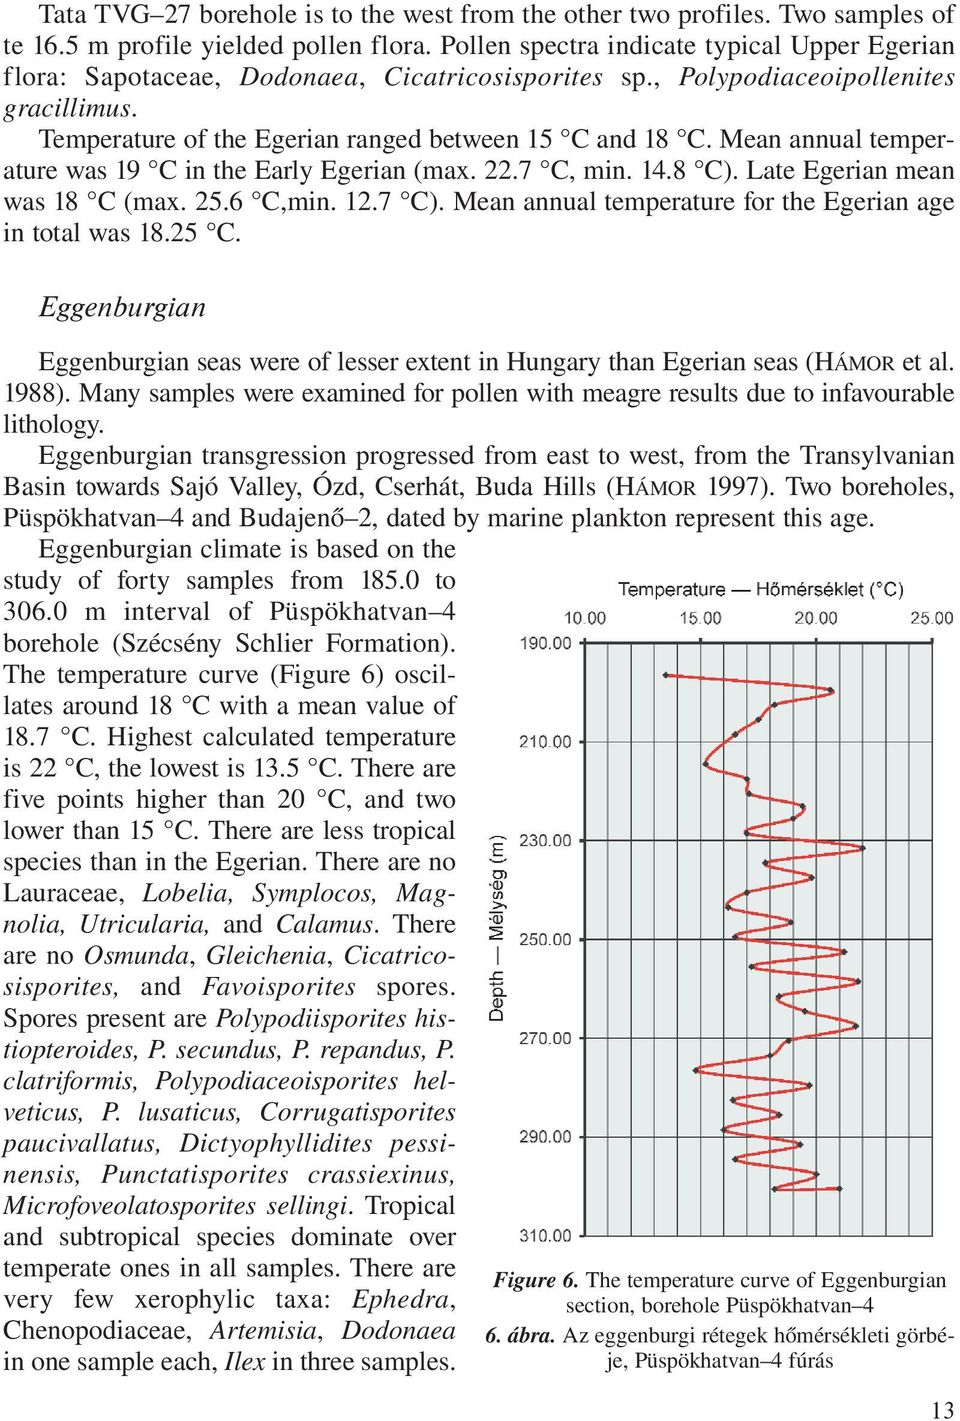 Mean annual temperature was 19 C in the Early Egerian (max. 22.7 C, min. 14.8 C). Late Egerian mean was 18 C (max. 25.6 C,min. 12.7 C). Mean annual temperature for the Egerian age in total was 18.